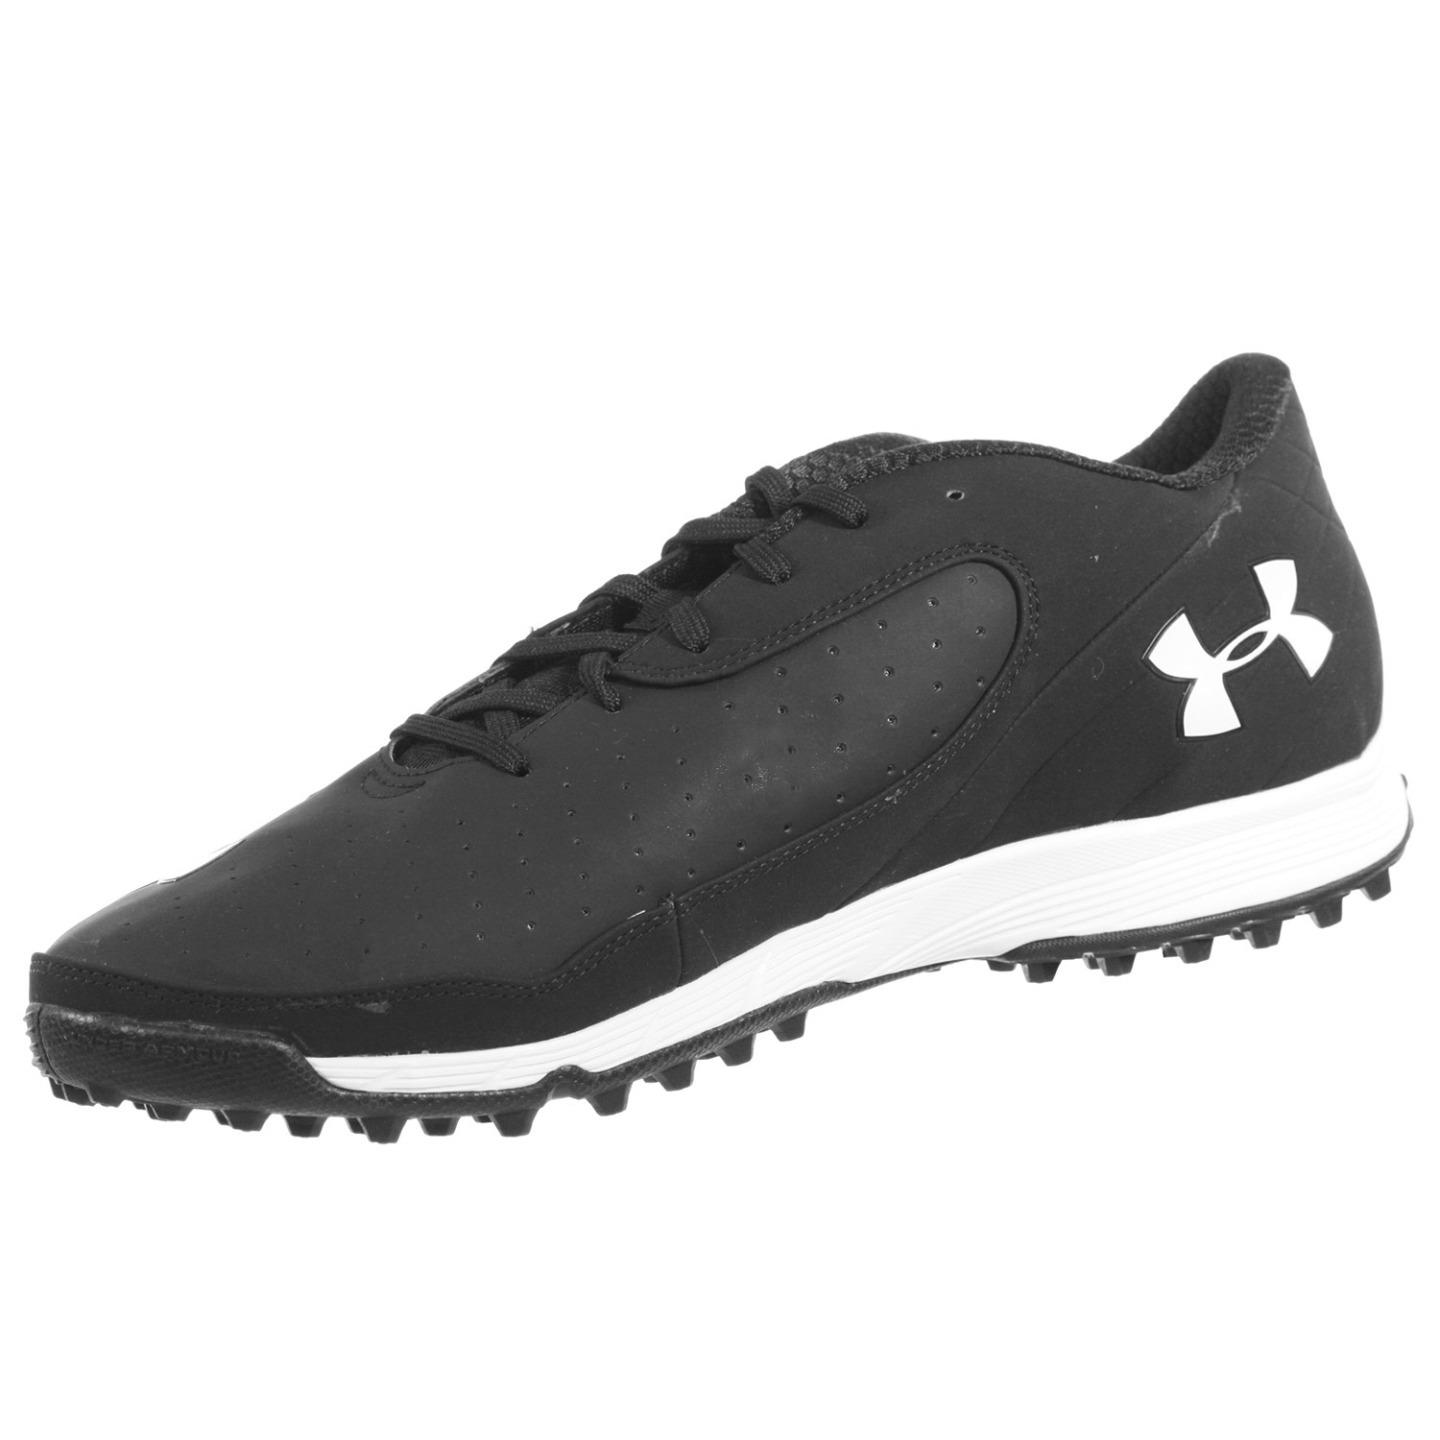 UNDER ARMOUR MENS ATHLETIC SHOES TEAM NITRO ICON LOW TF BLACK WHITE 13.5 M